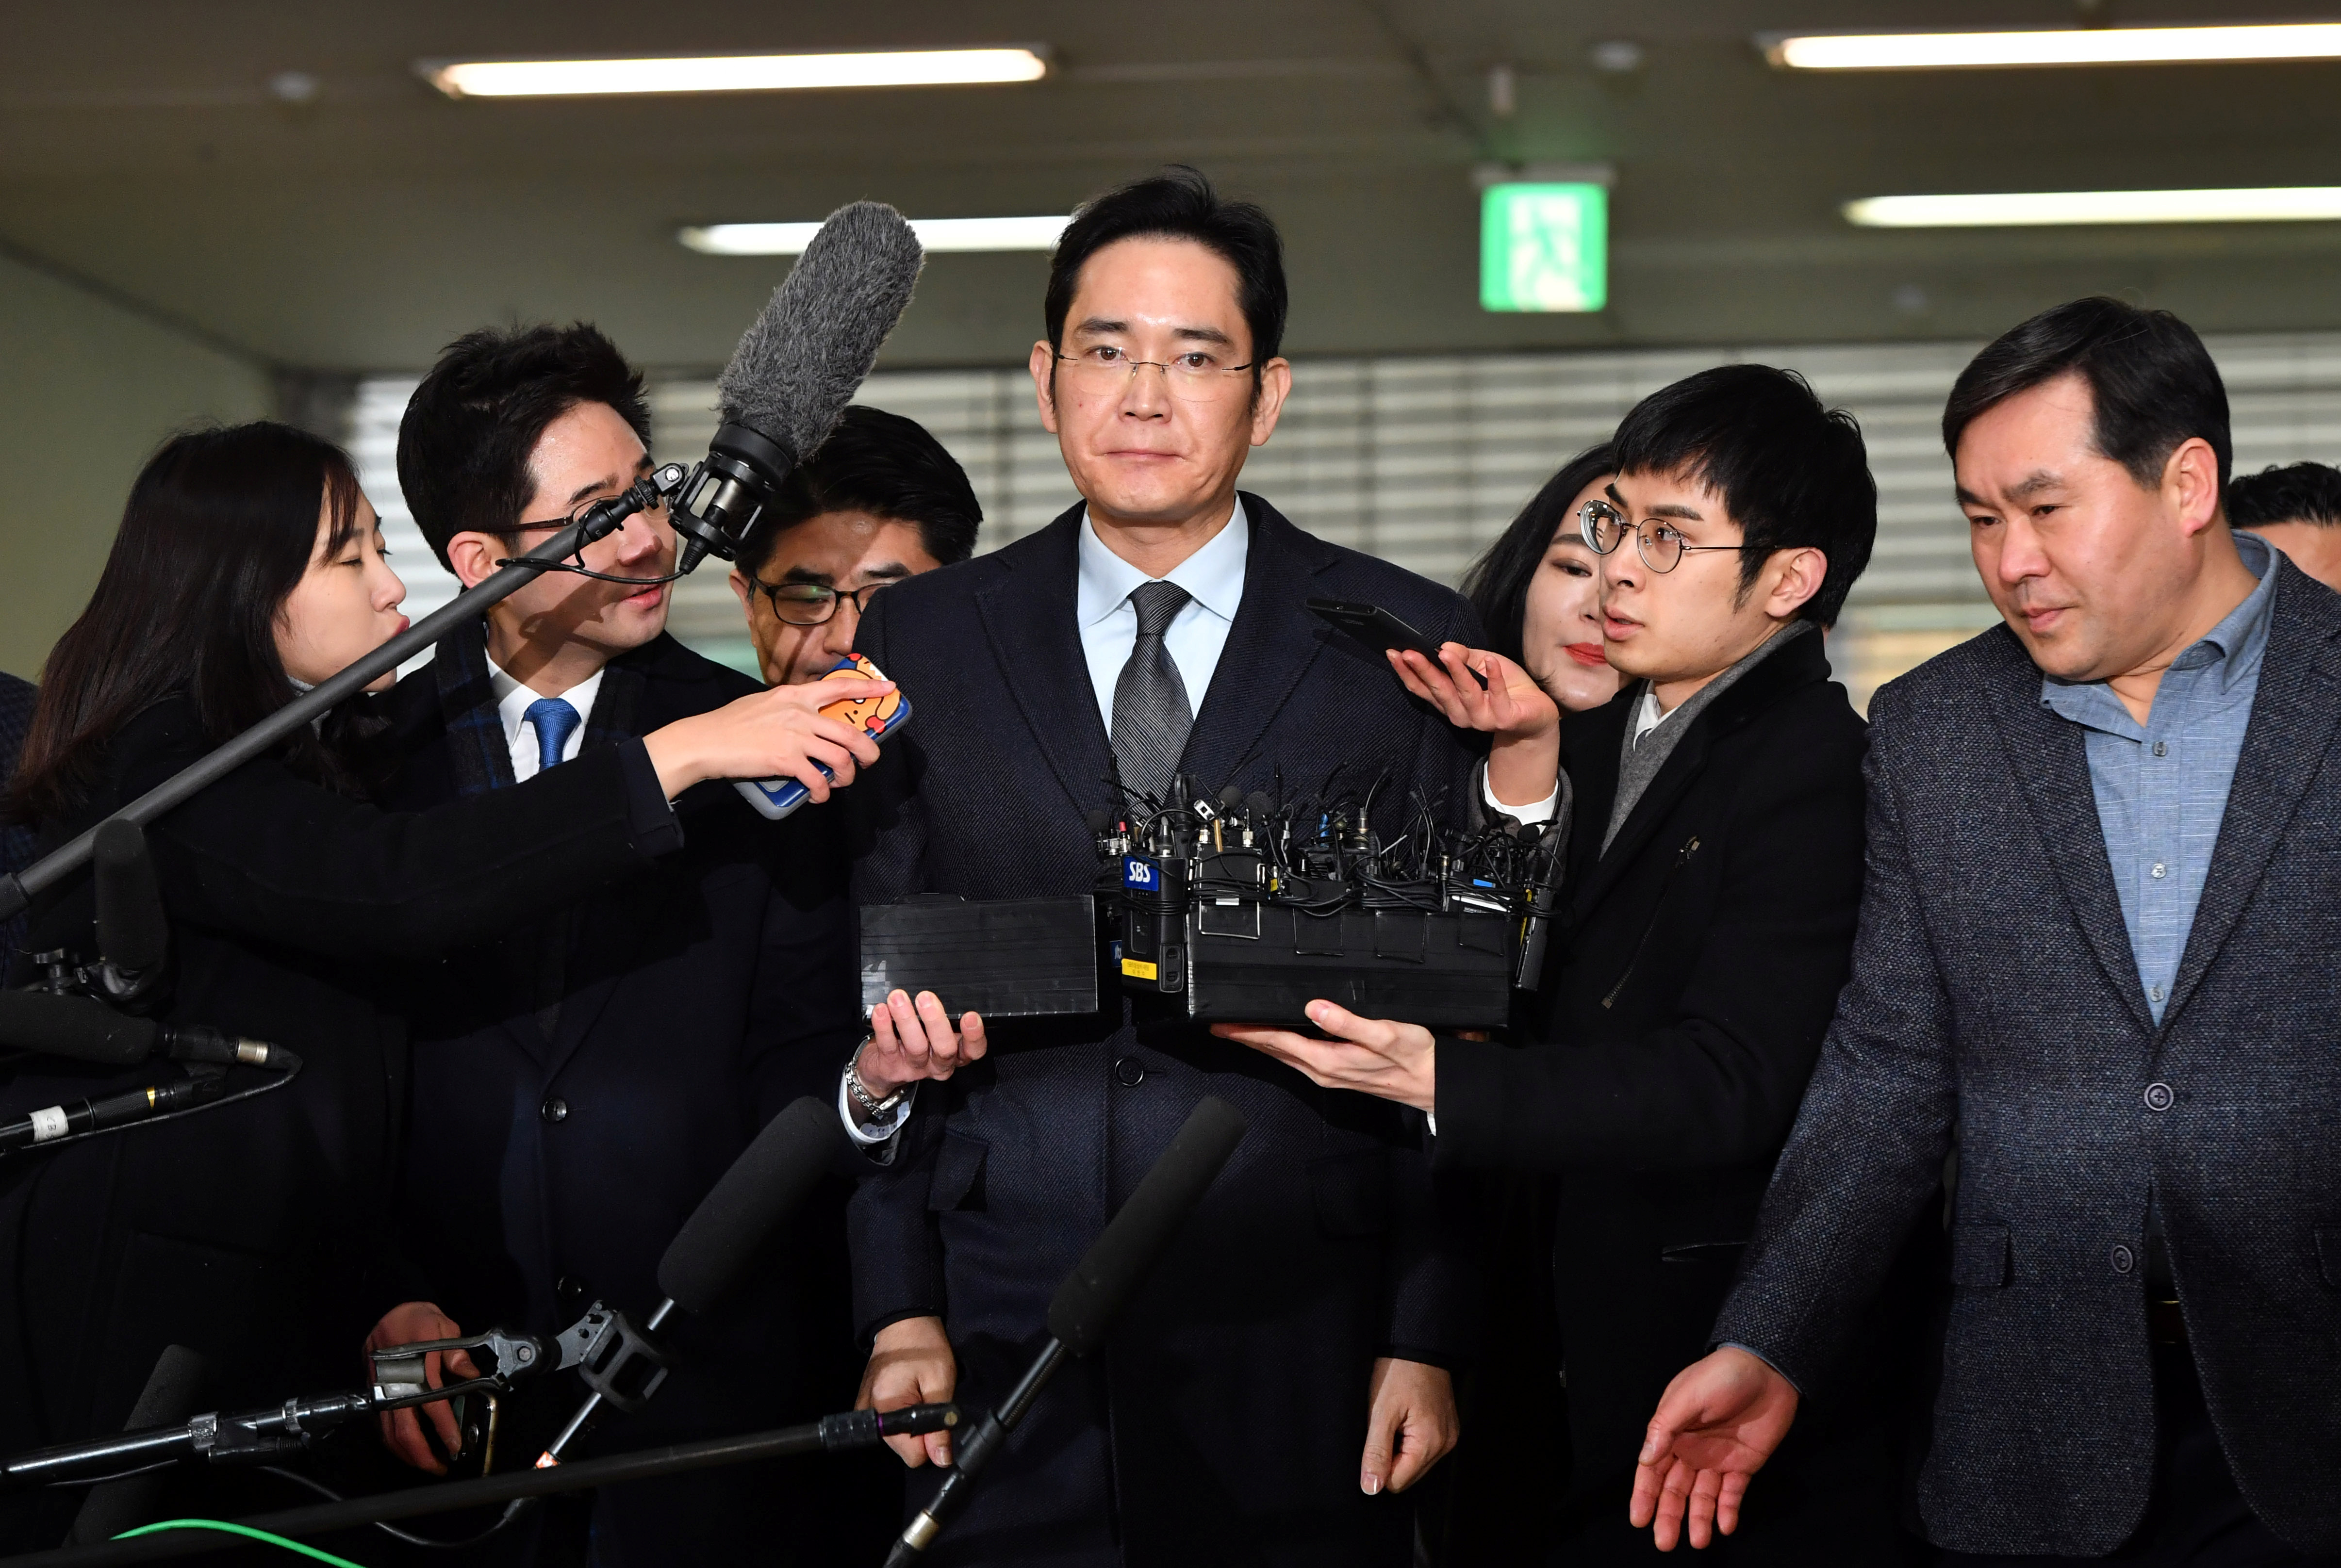 Lee Jae-yong, vice chairman of Samsung Electronics, aat the office of the independent counsel in Seoul on Feb. 13, 2017.